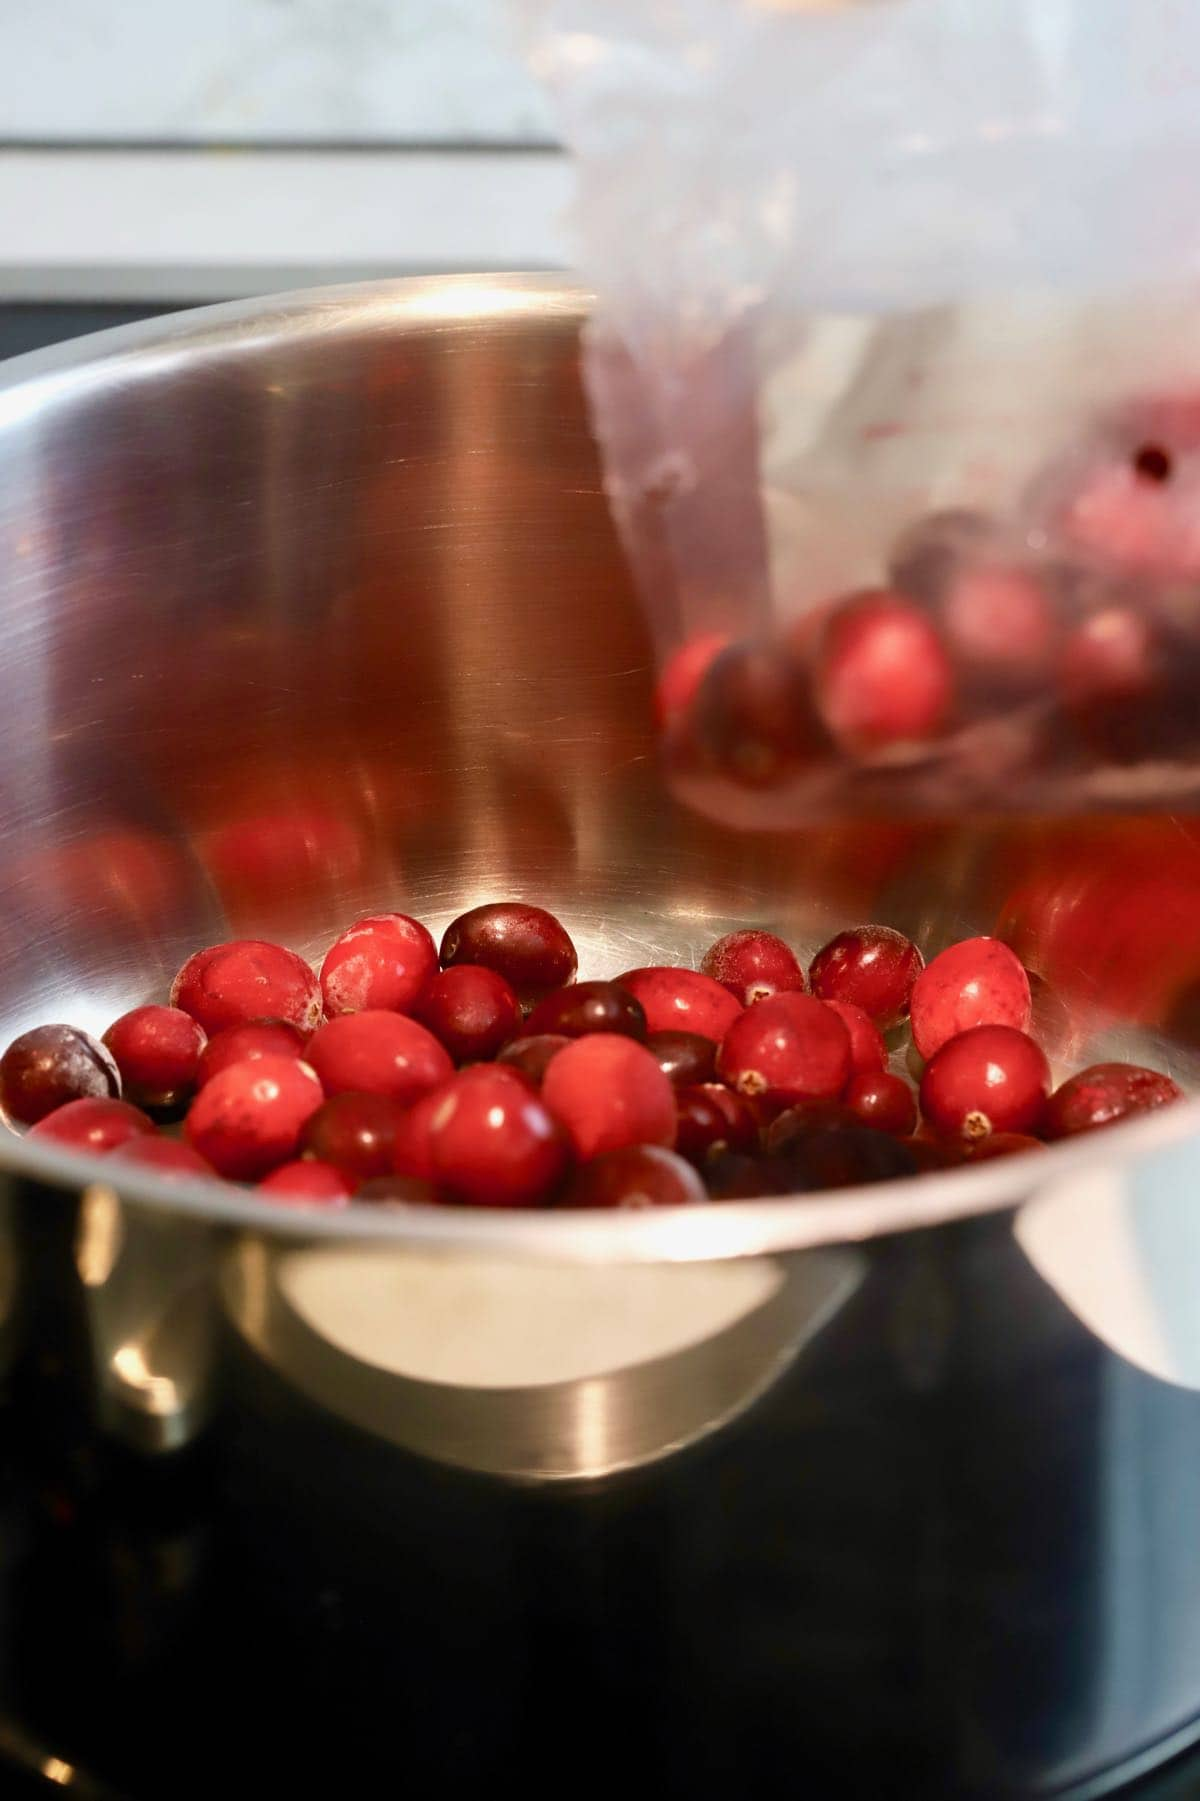 Pouring cranberries into a saucepan.